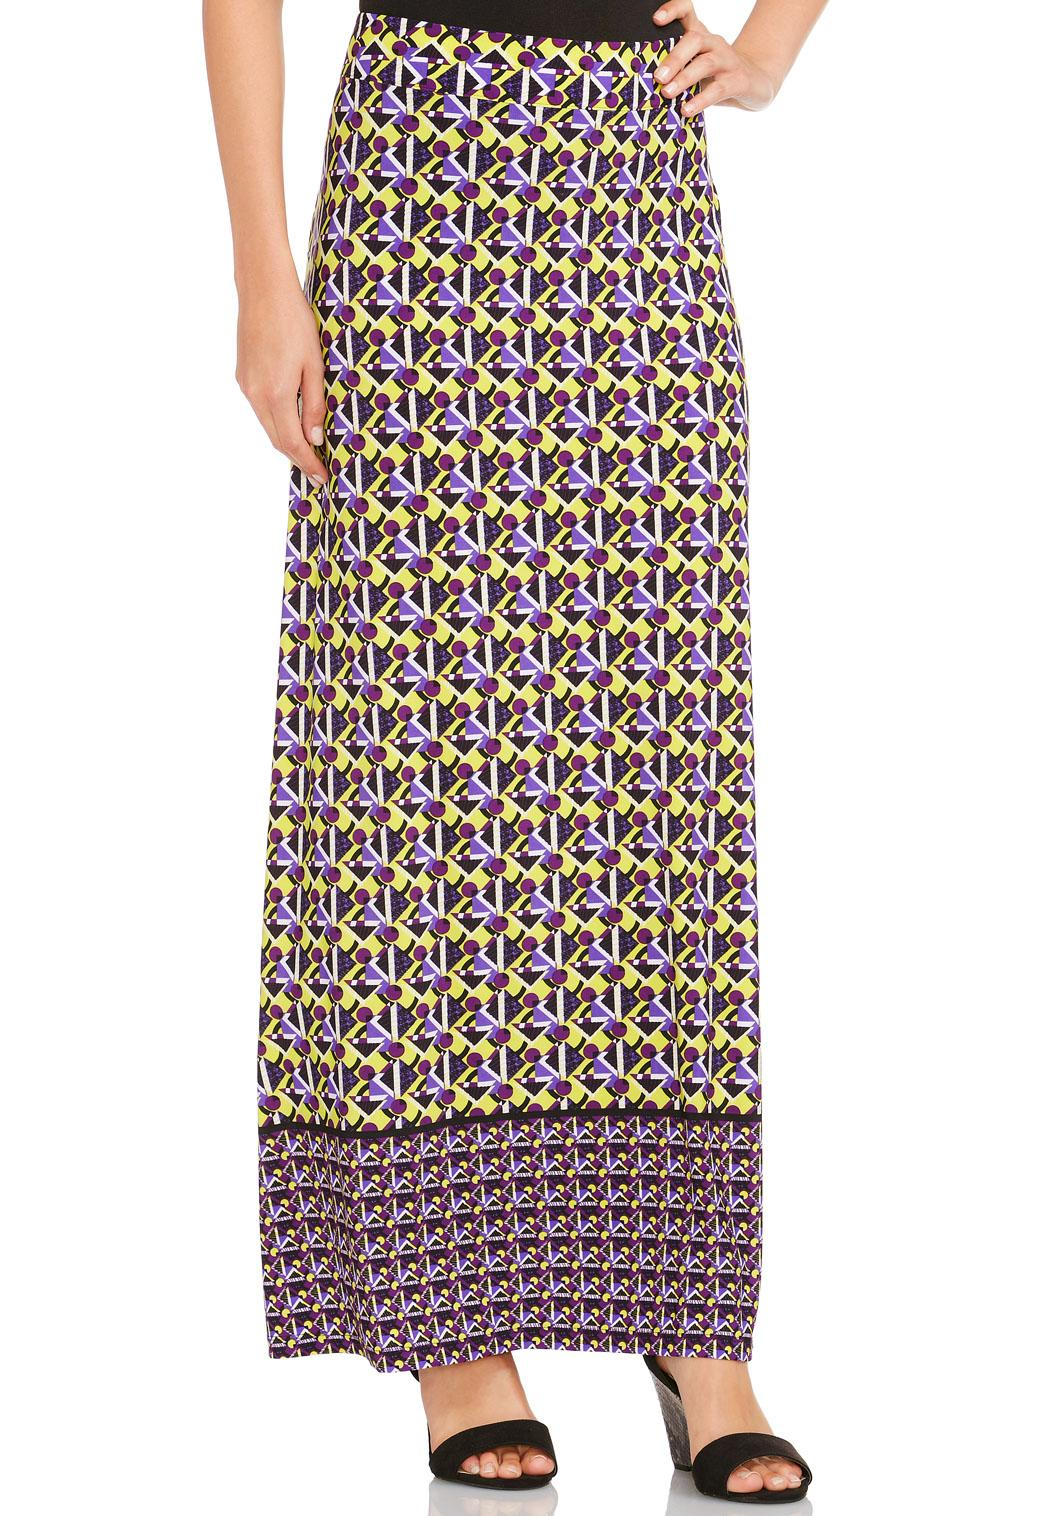 Cato Fashions Plus Size Skirts Maxi Skirt Plus Maxi Cato